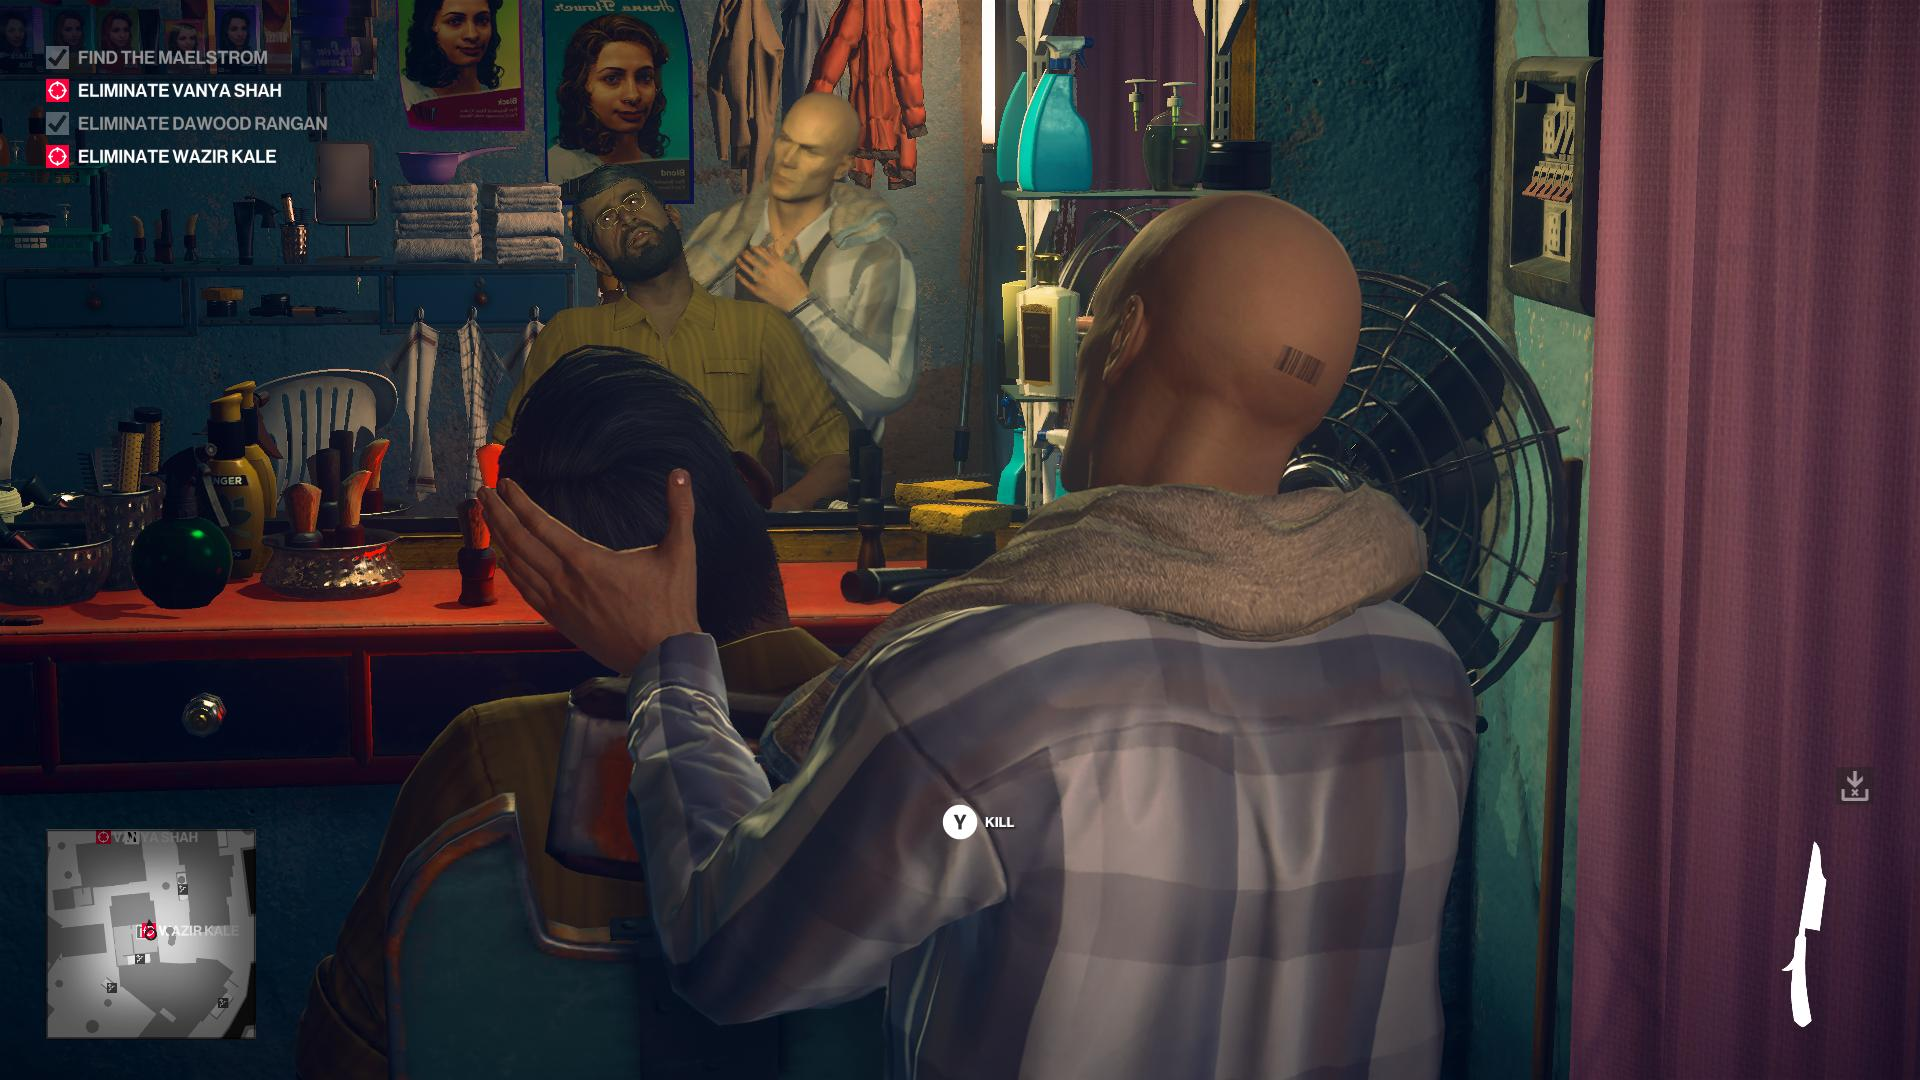 Agent 47 in a barber shop, about to give Wazir Kale a very close shave.